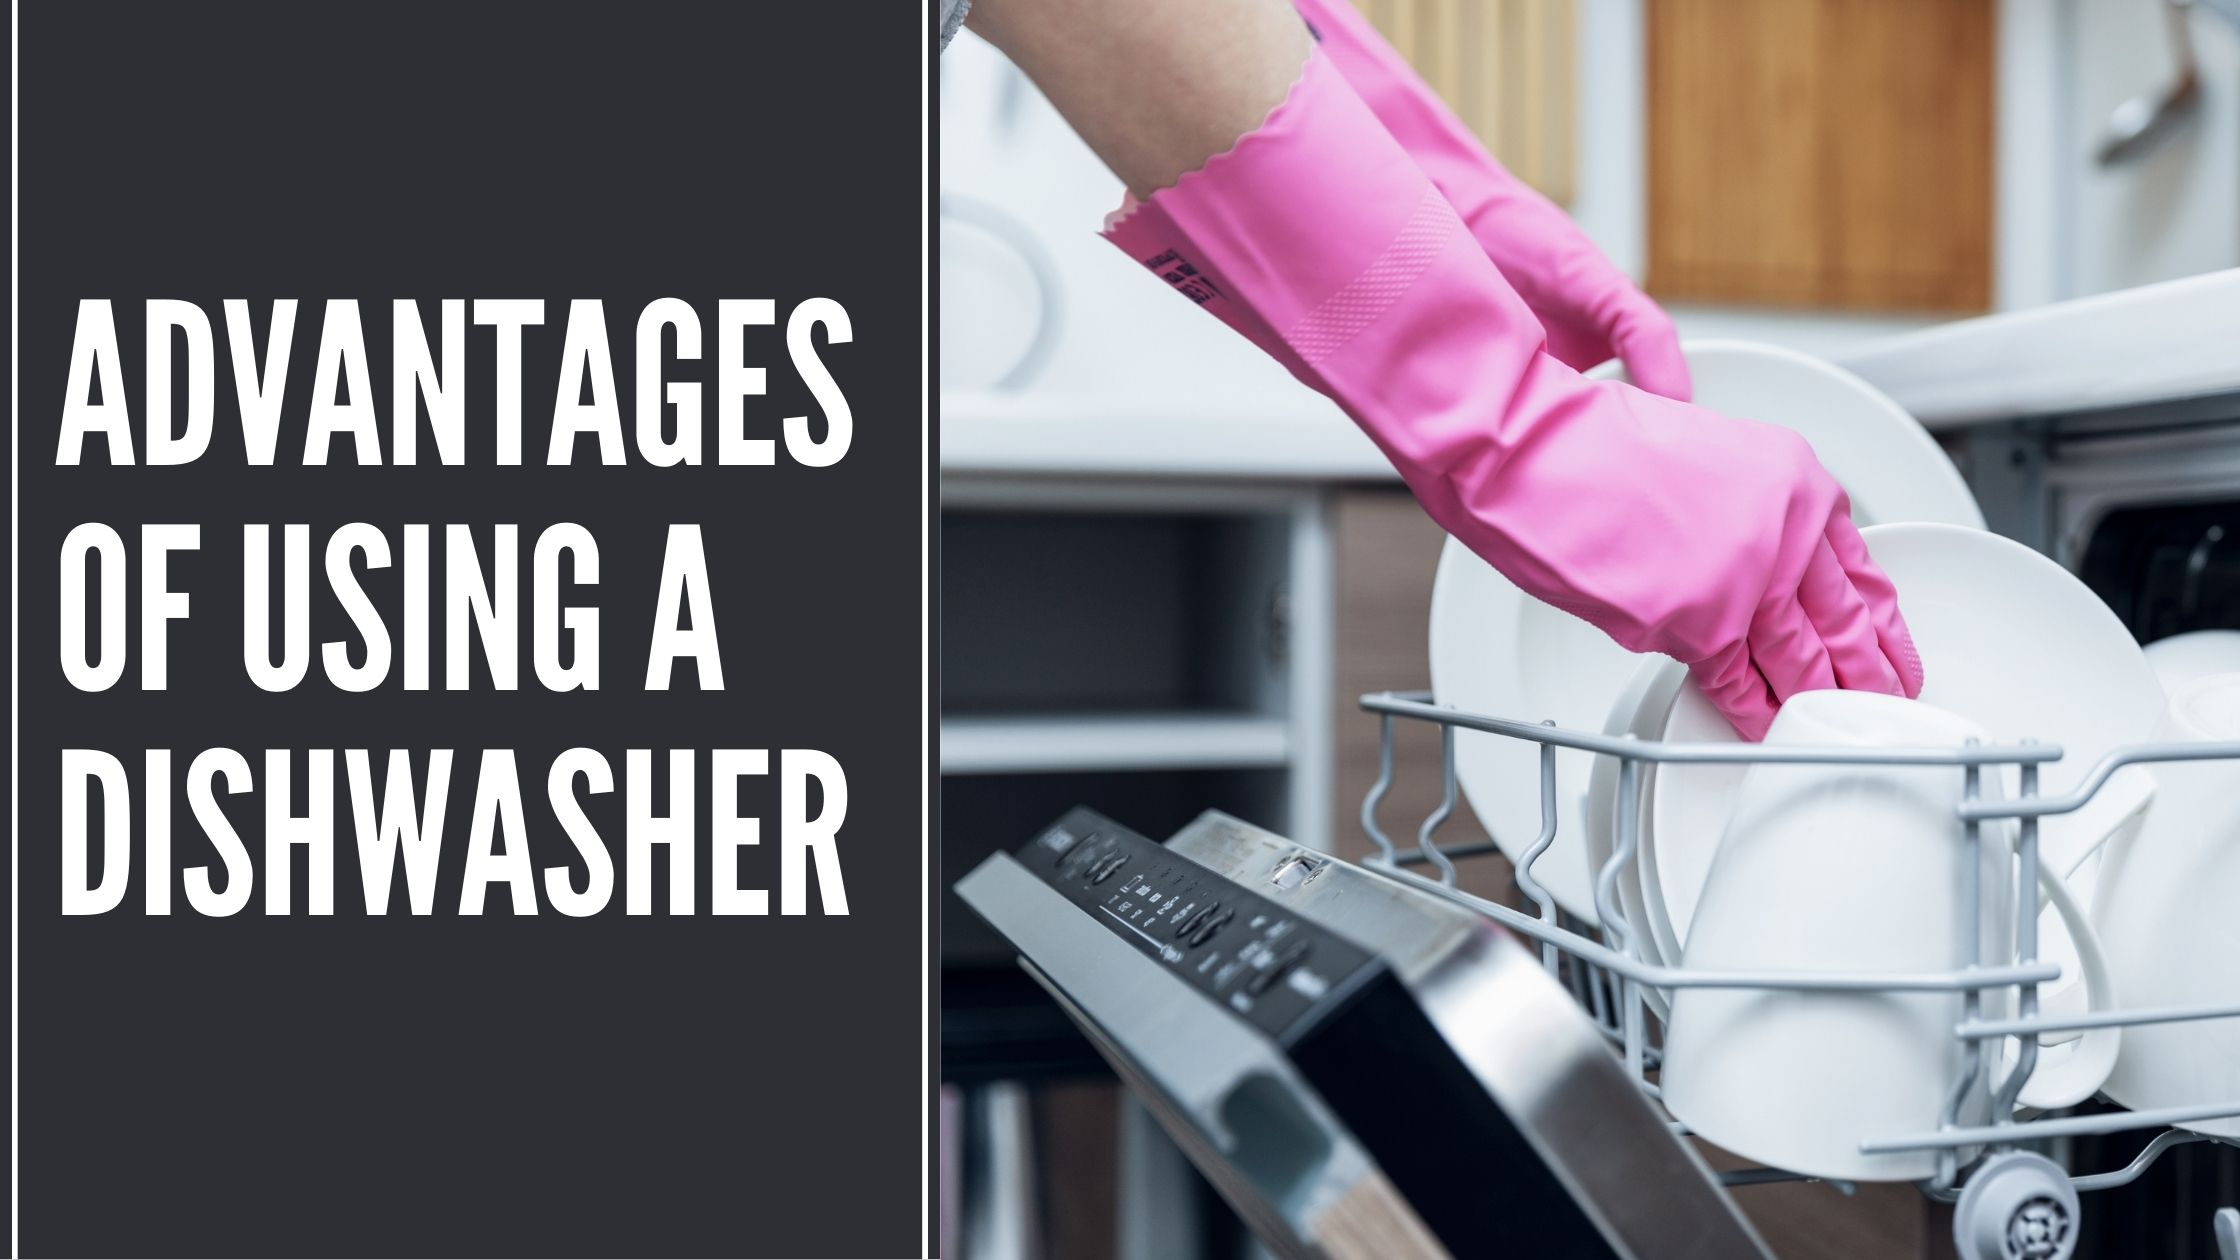 Advantages Of Using A Dishwasher